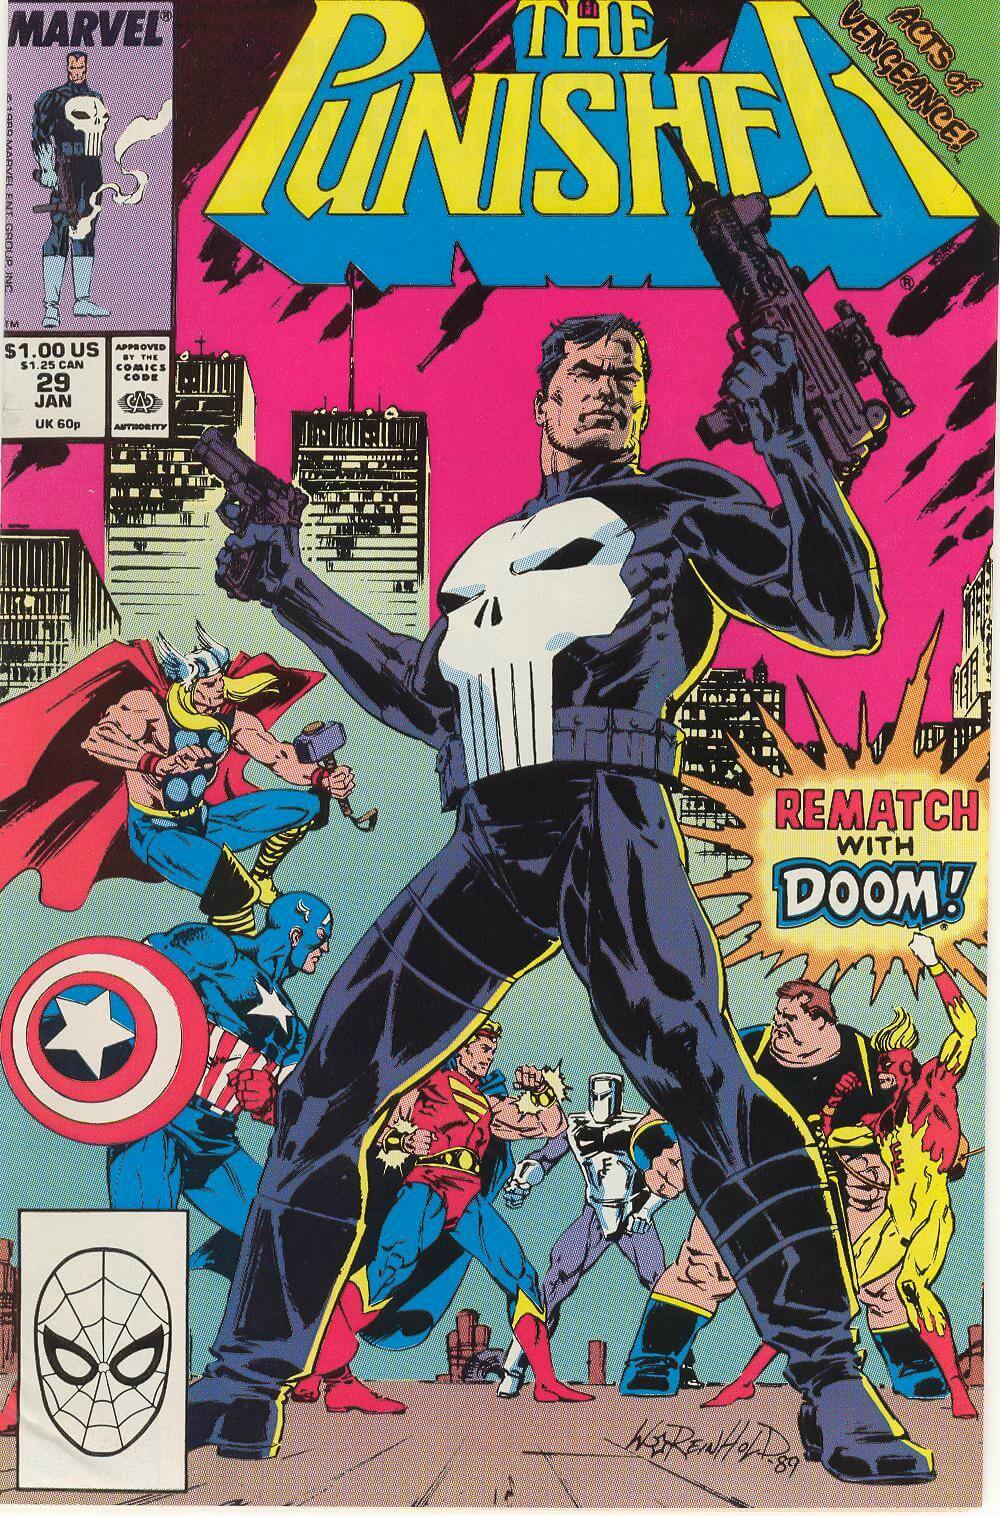 The Punisher Vol 2 #29